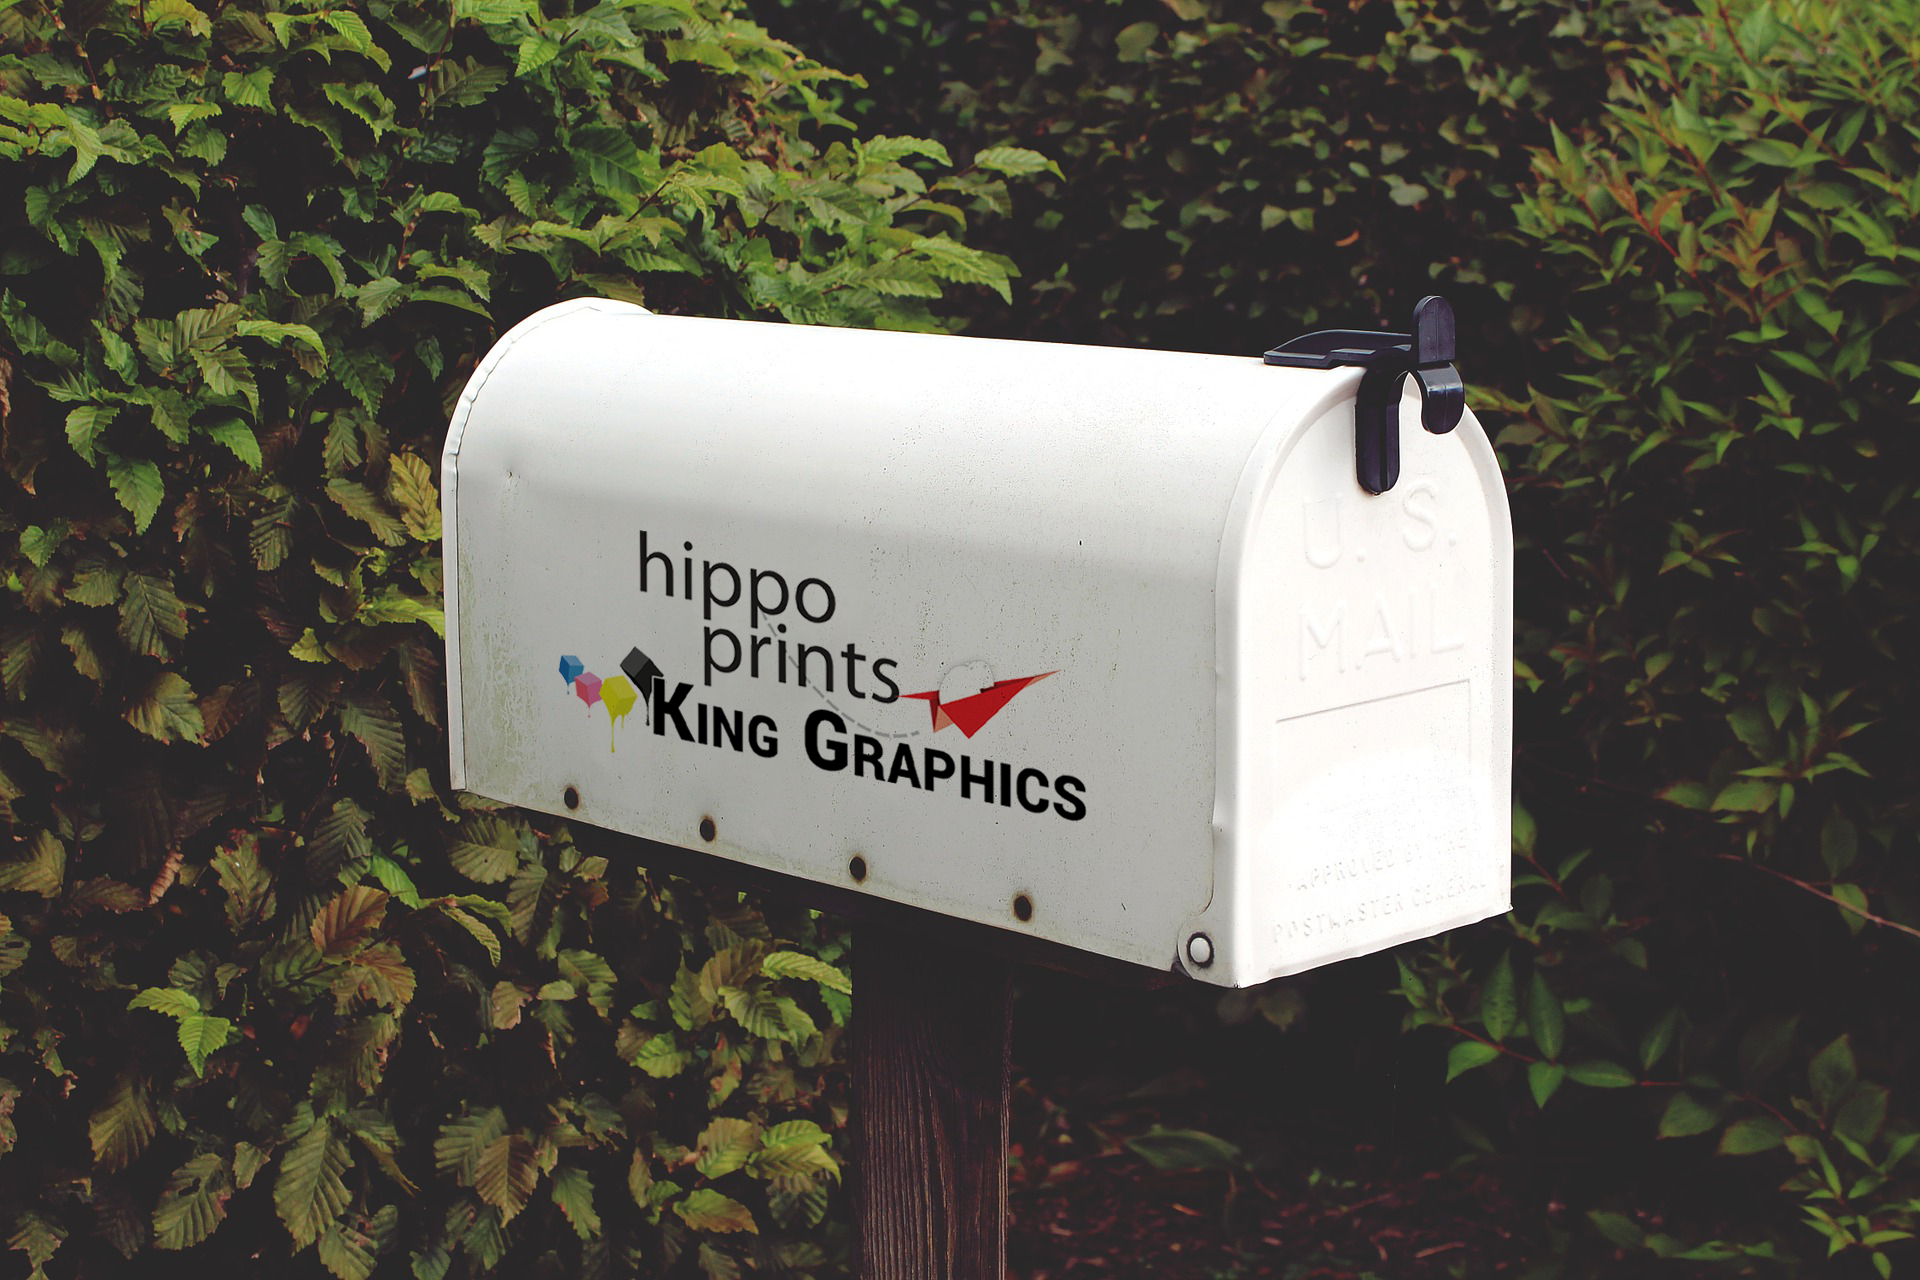 Mail & Marketing Services - We offer services for Every Door Direct Mailing (EDDM), Mass Mailers, Variable Data Printing, or other mail marketing services. You can provide a list or we can obtain one for you. Ask us about our mailing services today.